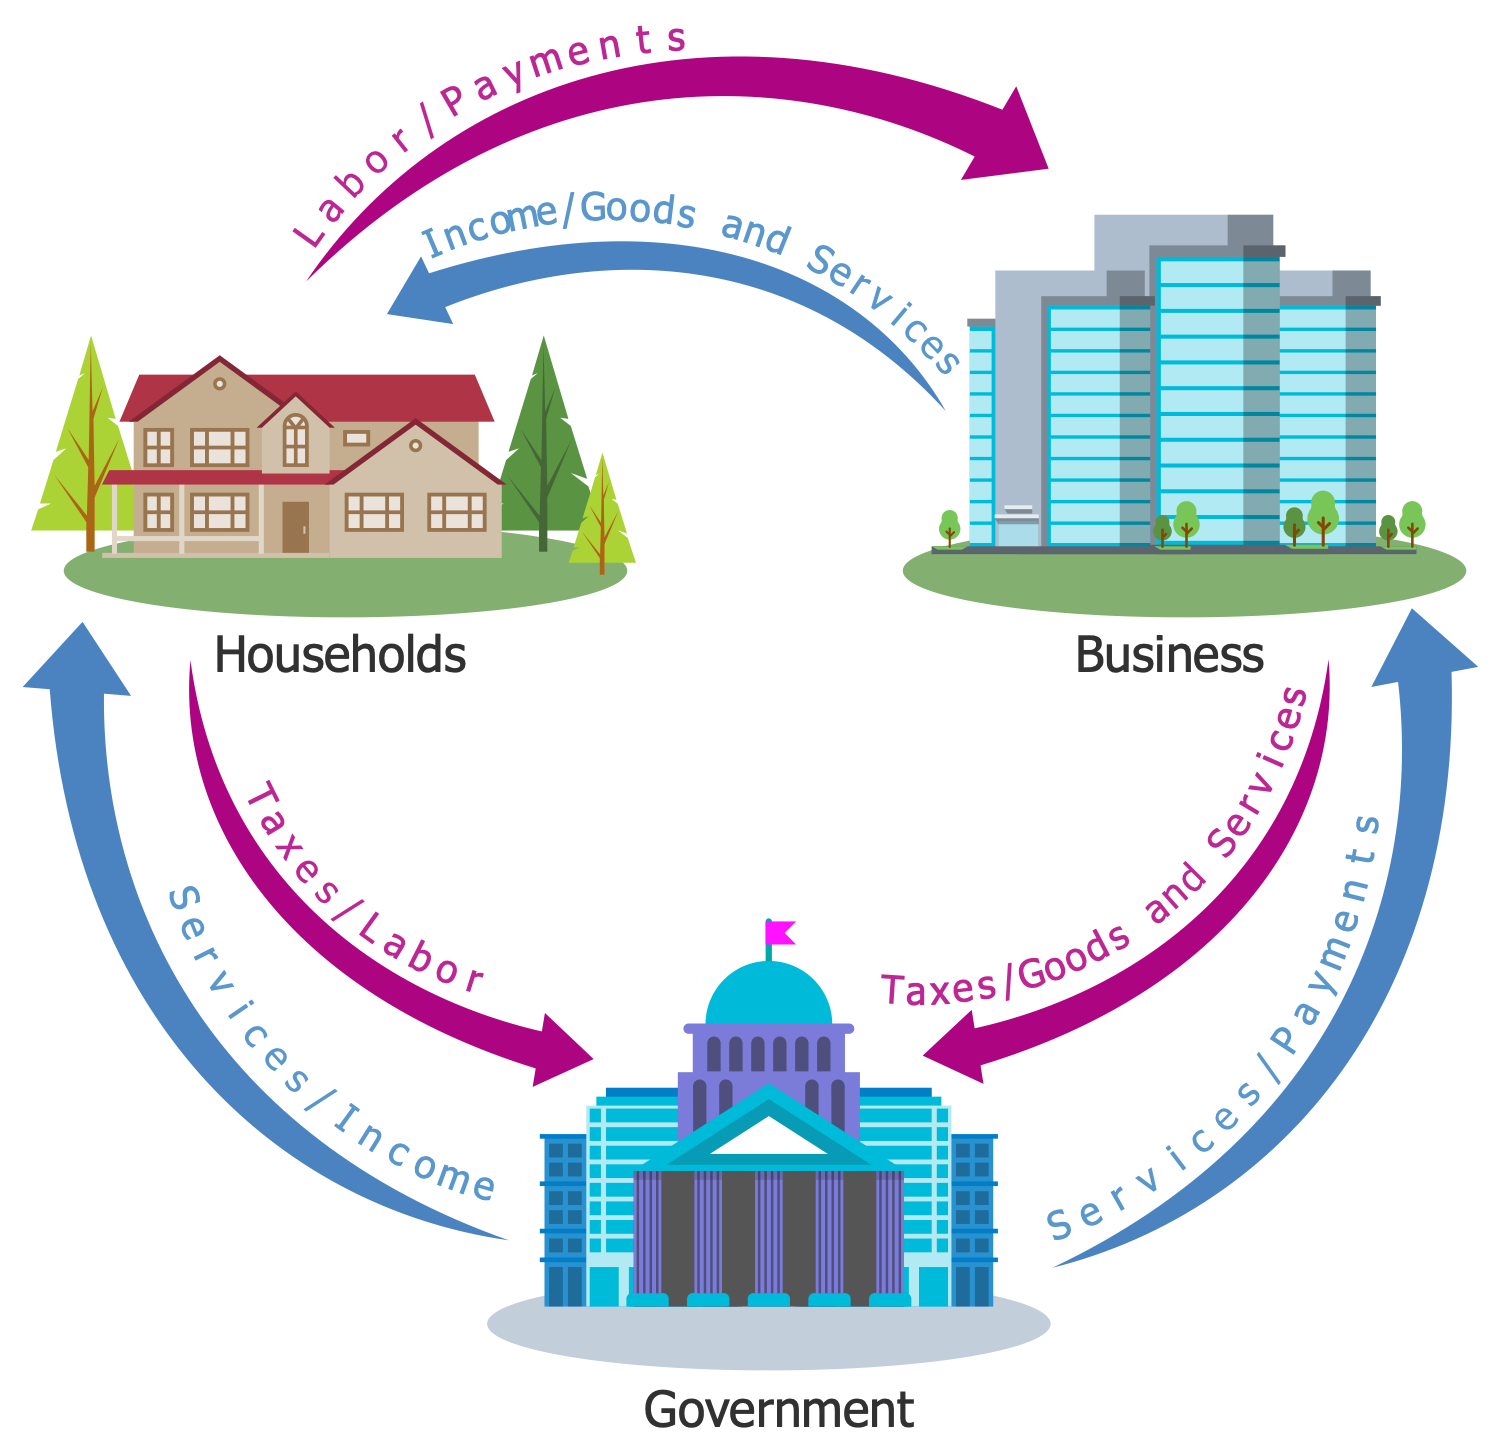 Example 4 3 Sector Circular Flow Diagram This Economy Infographic Represents The Three Sector Circular Flo In 2020 Economy Infographic Economy Circular Flow Of Income